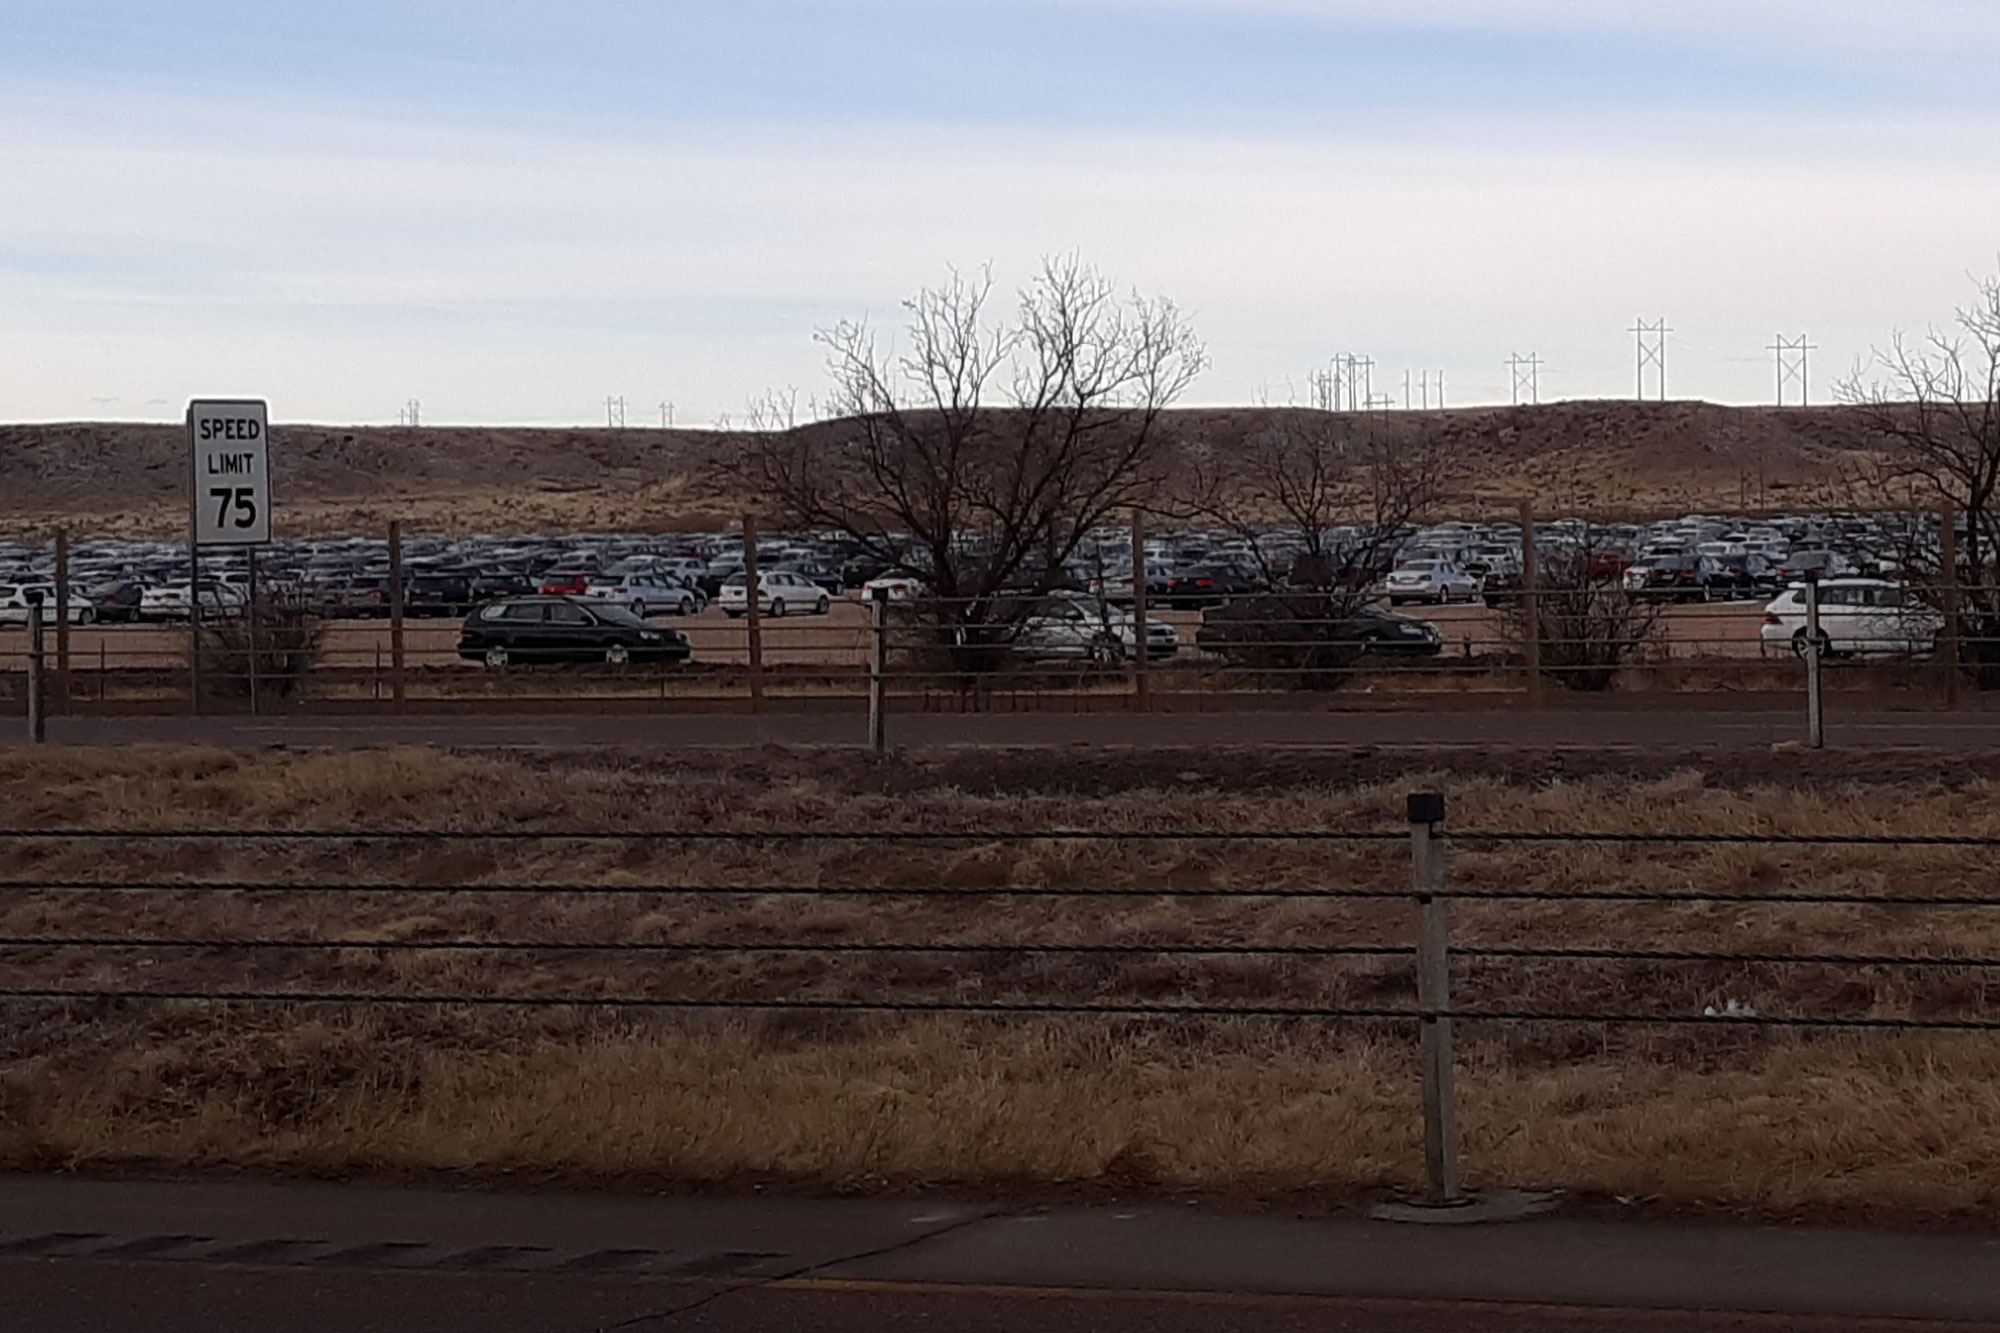 <p>The lot full of Volkswagen cars off I-25 between Pueblo and Colorado Springs.</p>